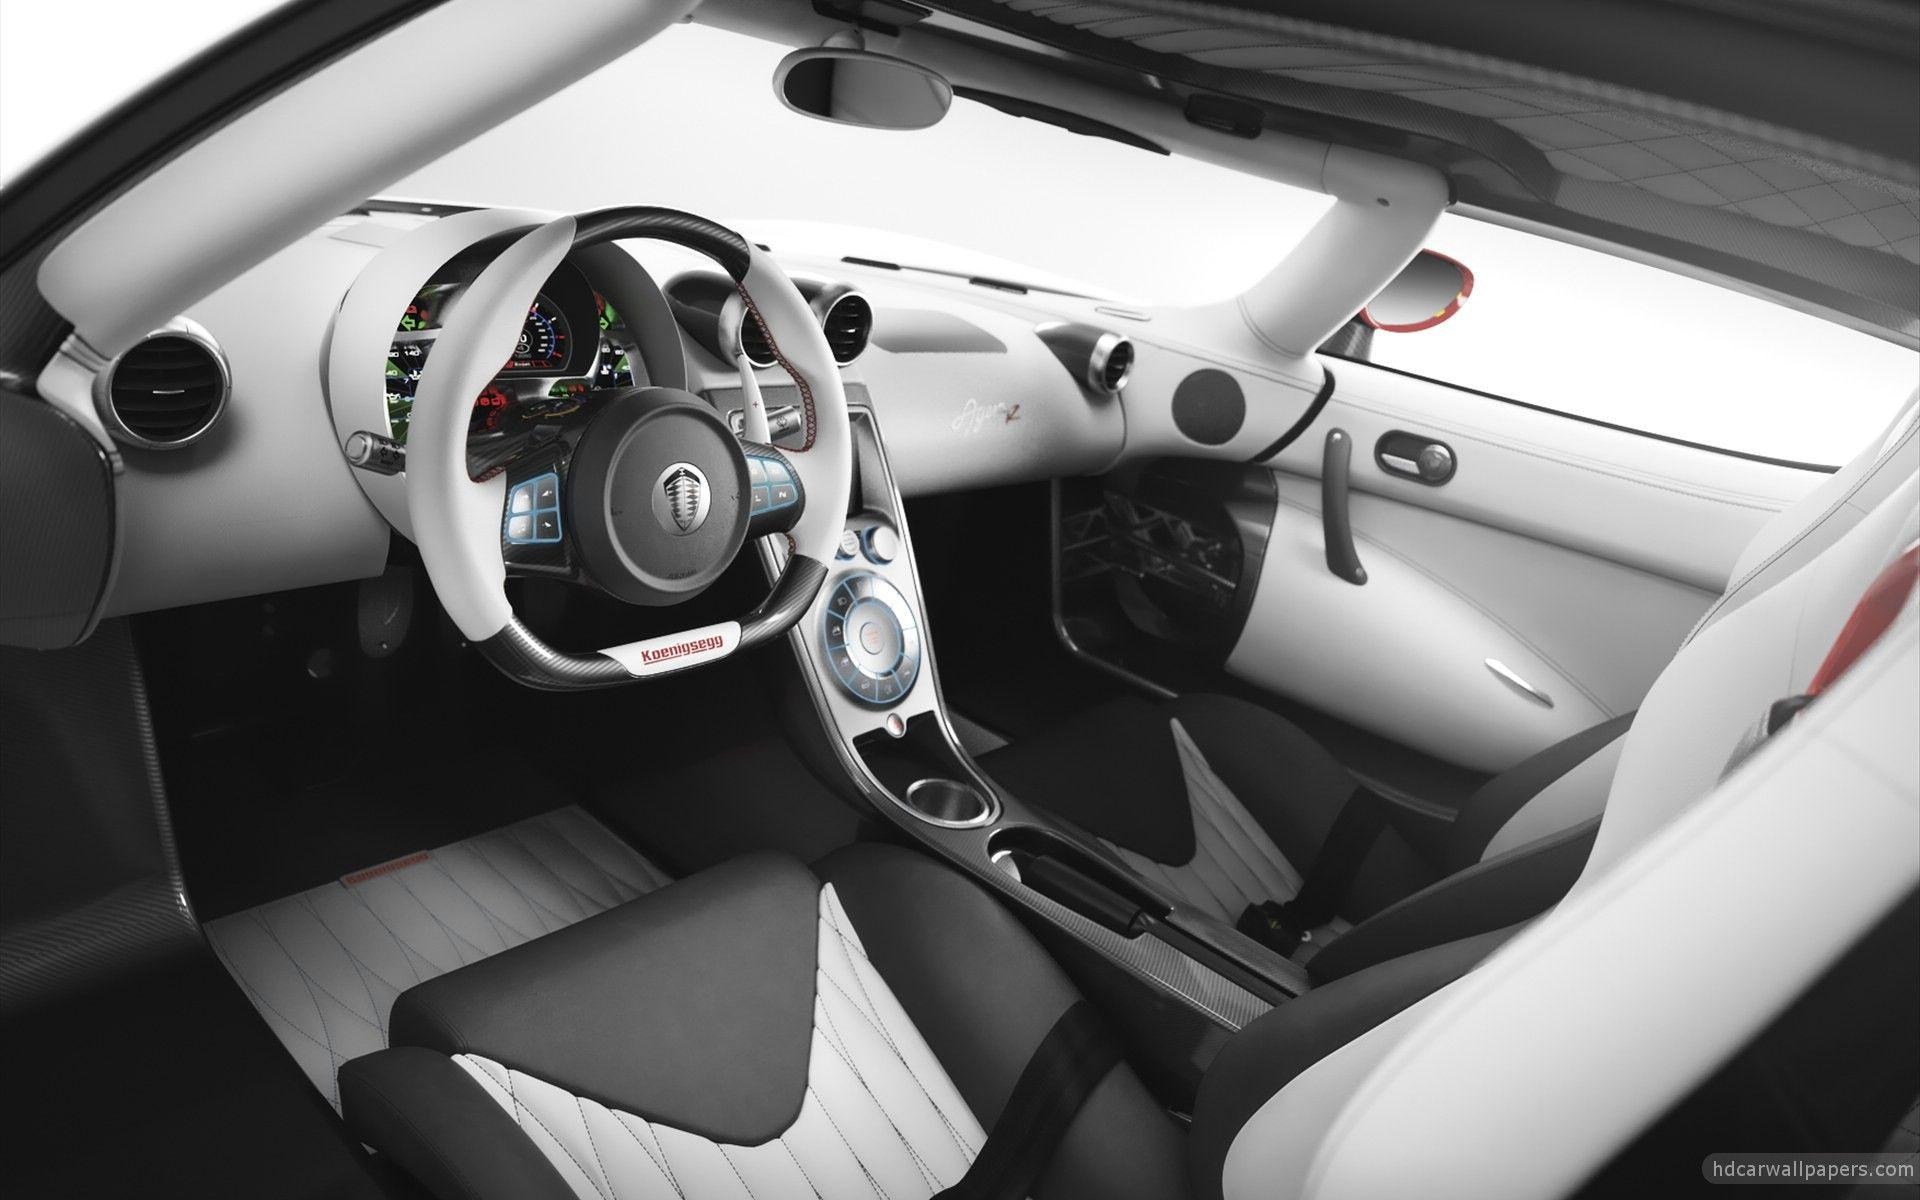 2012 Koenigsegg Agera R Interior Wallpaper | HD Car Wallpapers